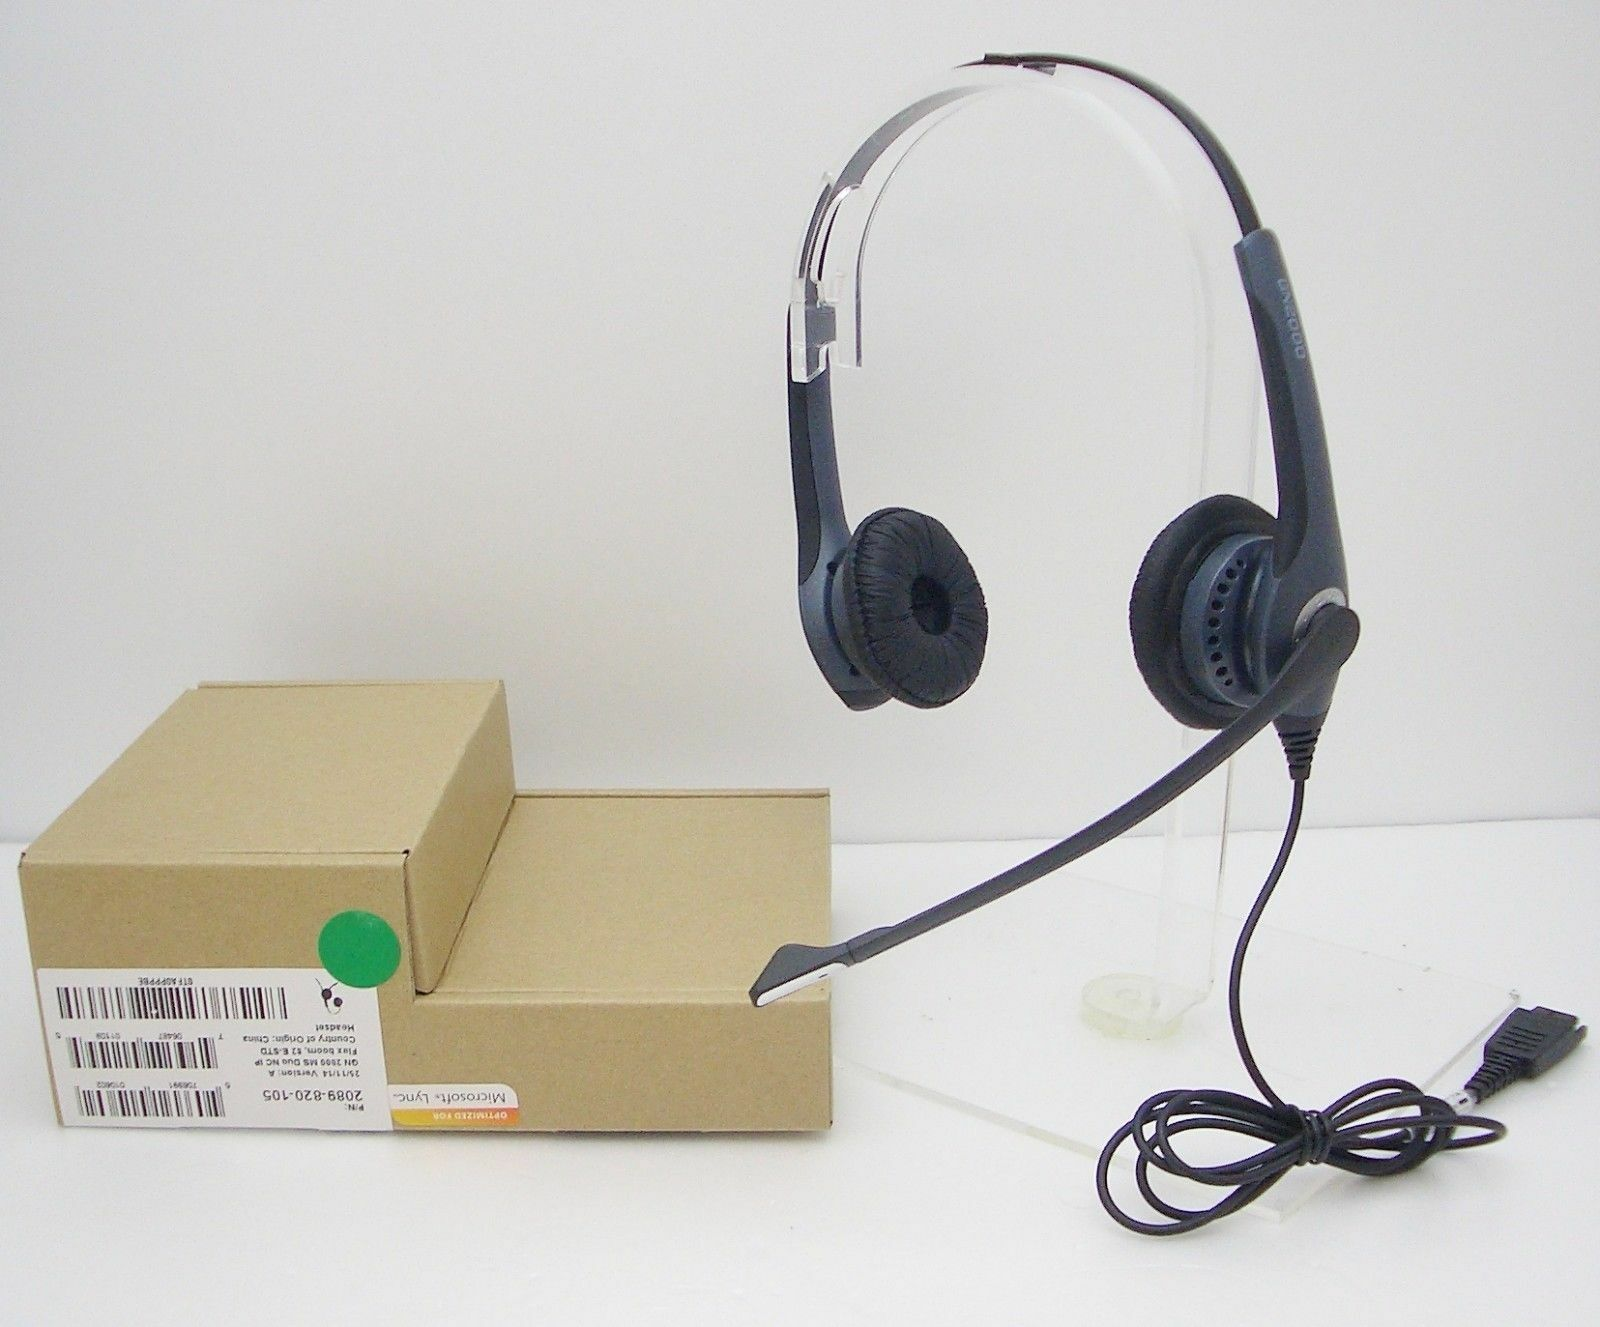 Details about GN2000-NC Headset for Cisco 6821 6921 6941 6961 7861 7941  7961 7971 8941 & 8961